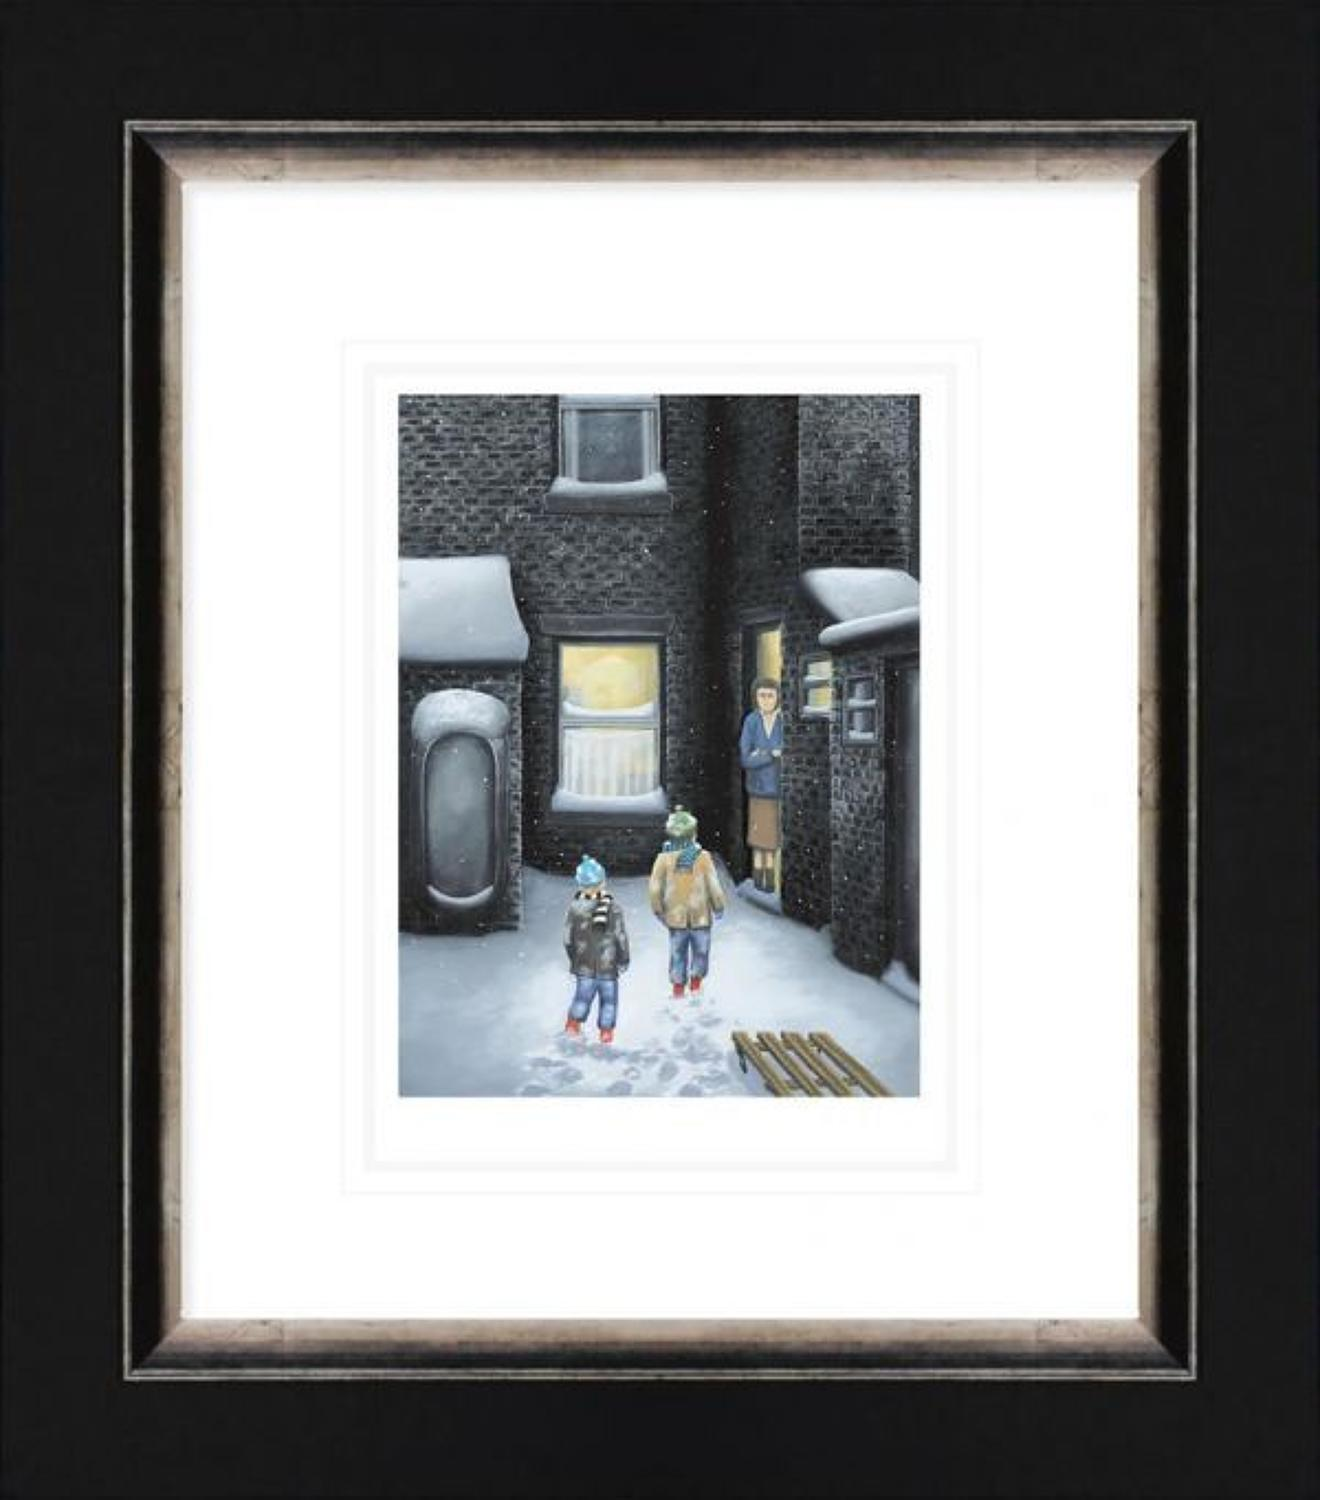 What's For tea Mam - Framed Paper Art Print by Leigh Lambert